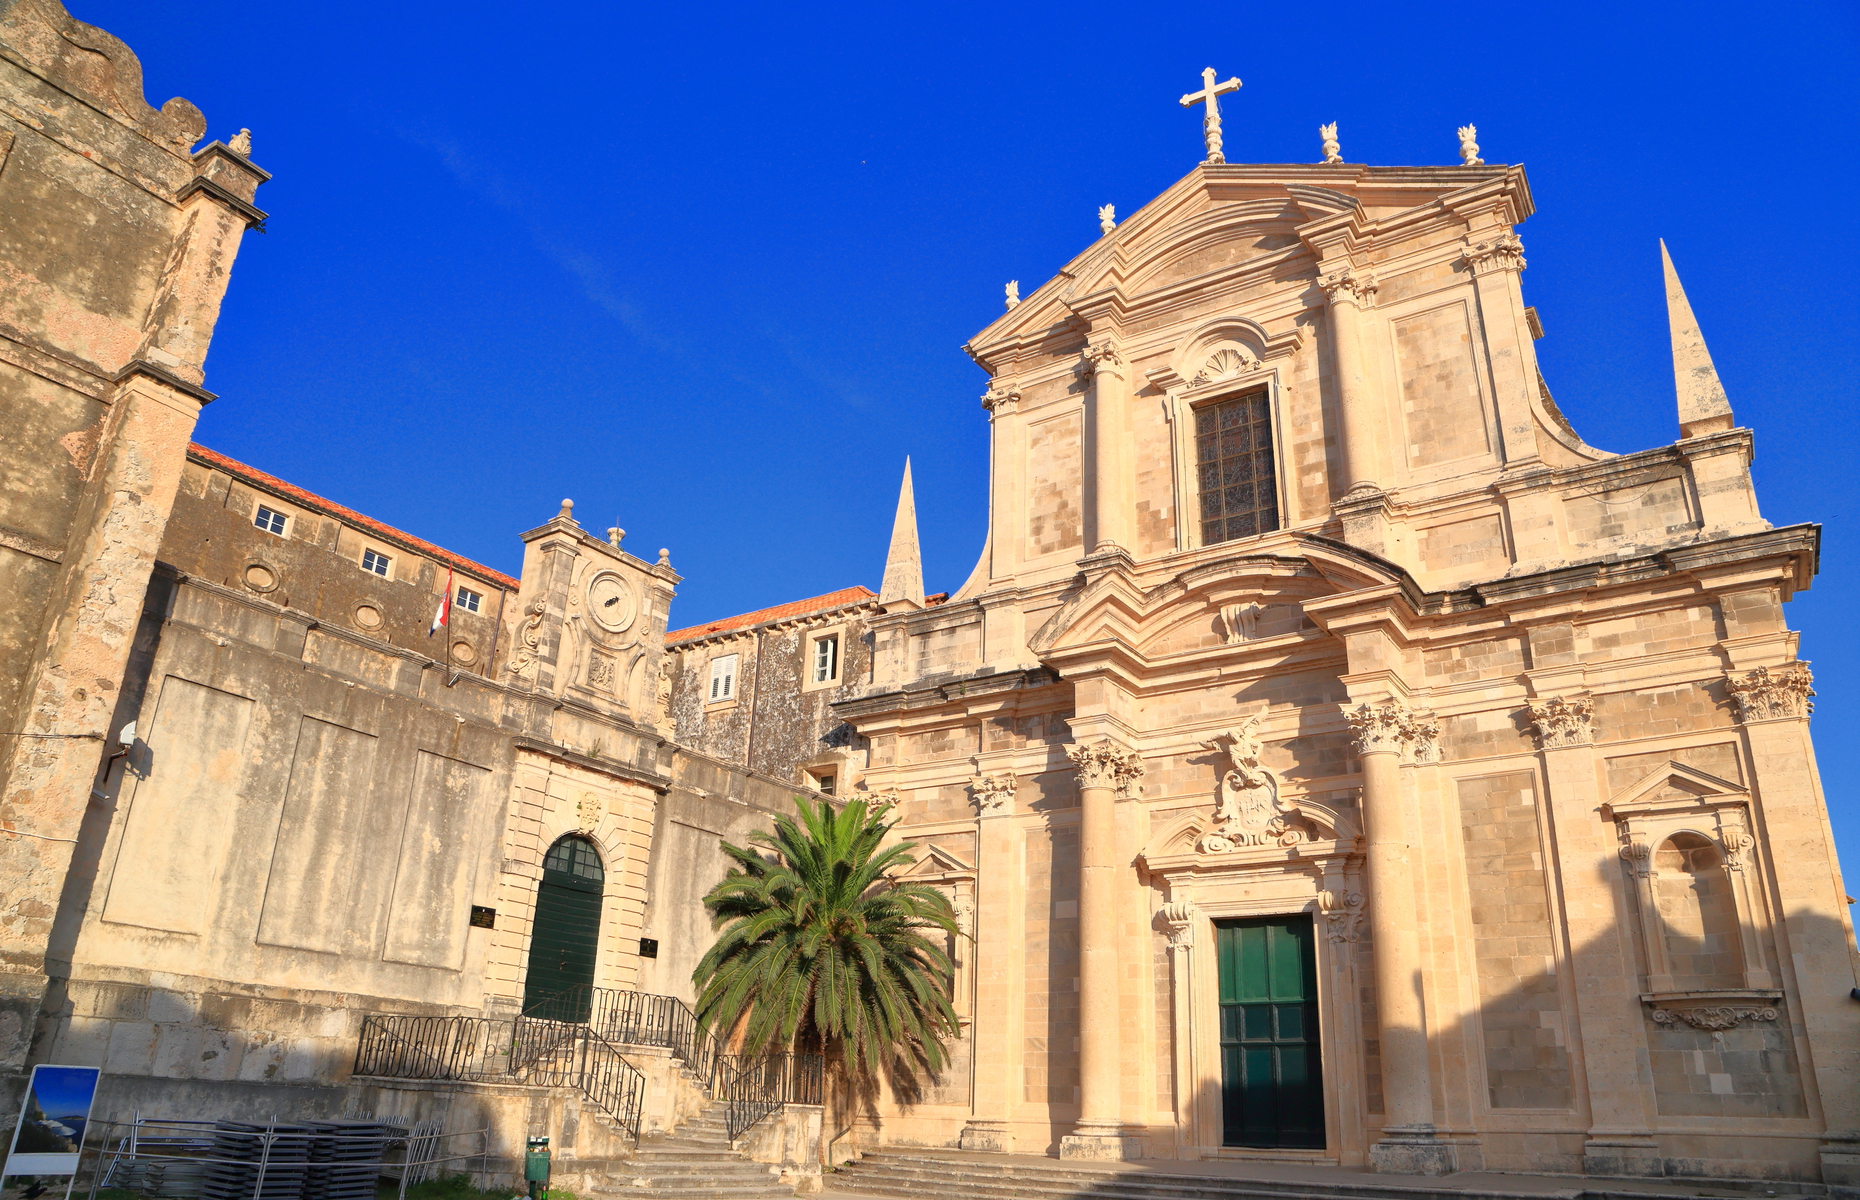 Church of St. Ignatius (Image: Inu/Shutterstock)